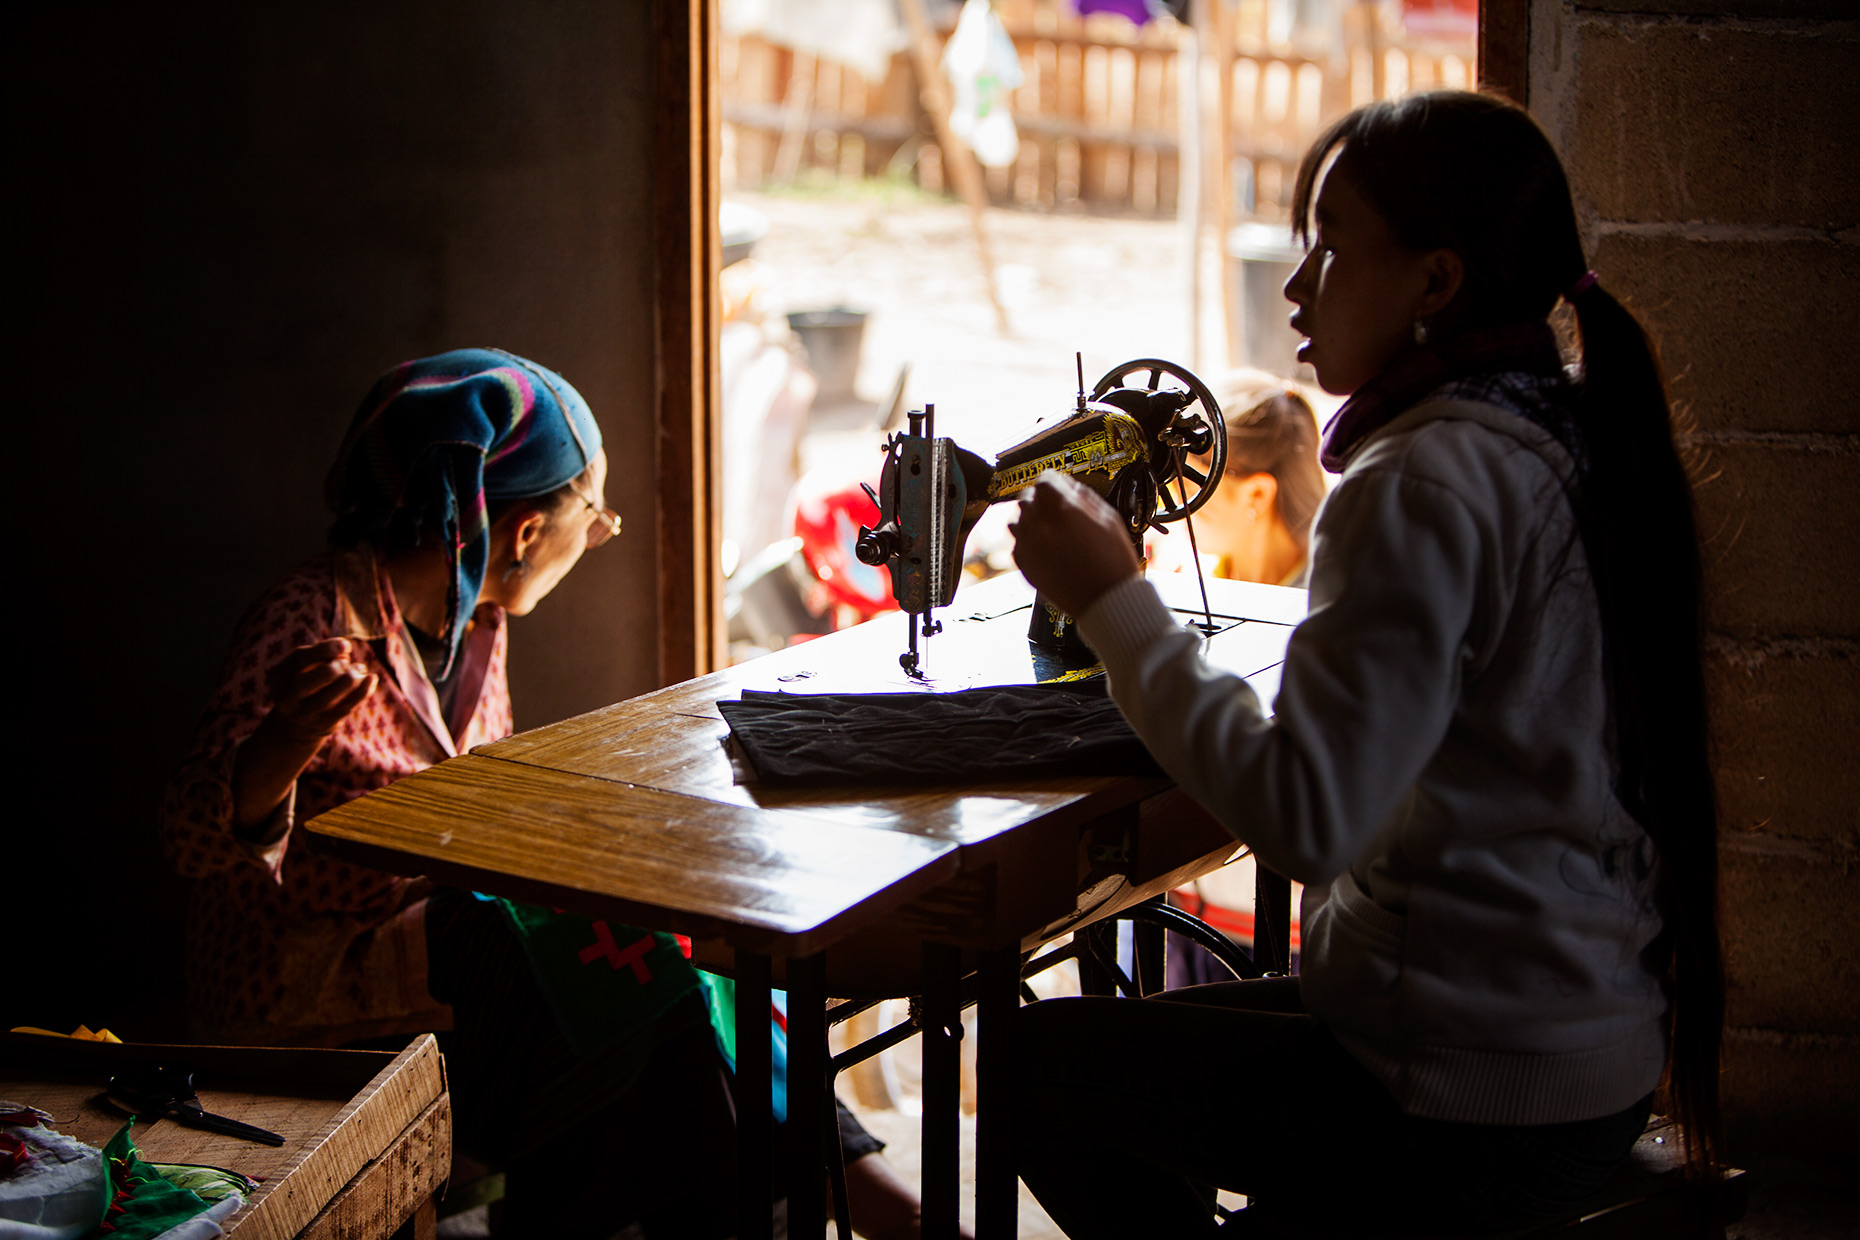 Hmong people sewing